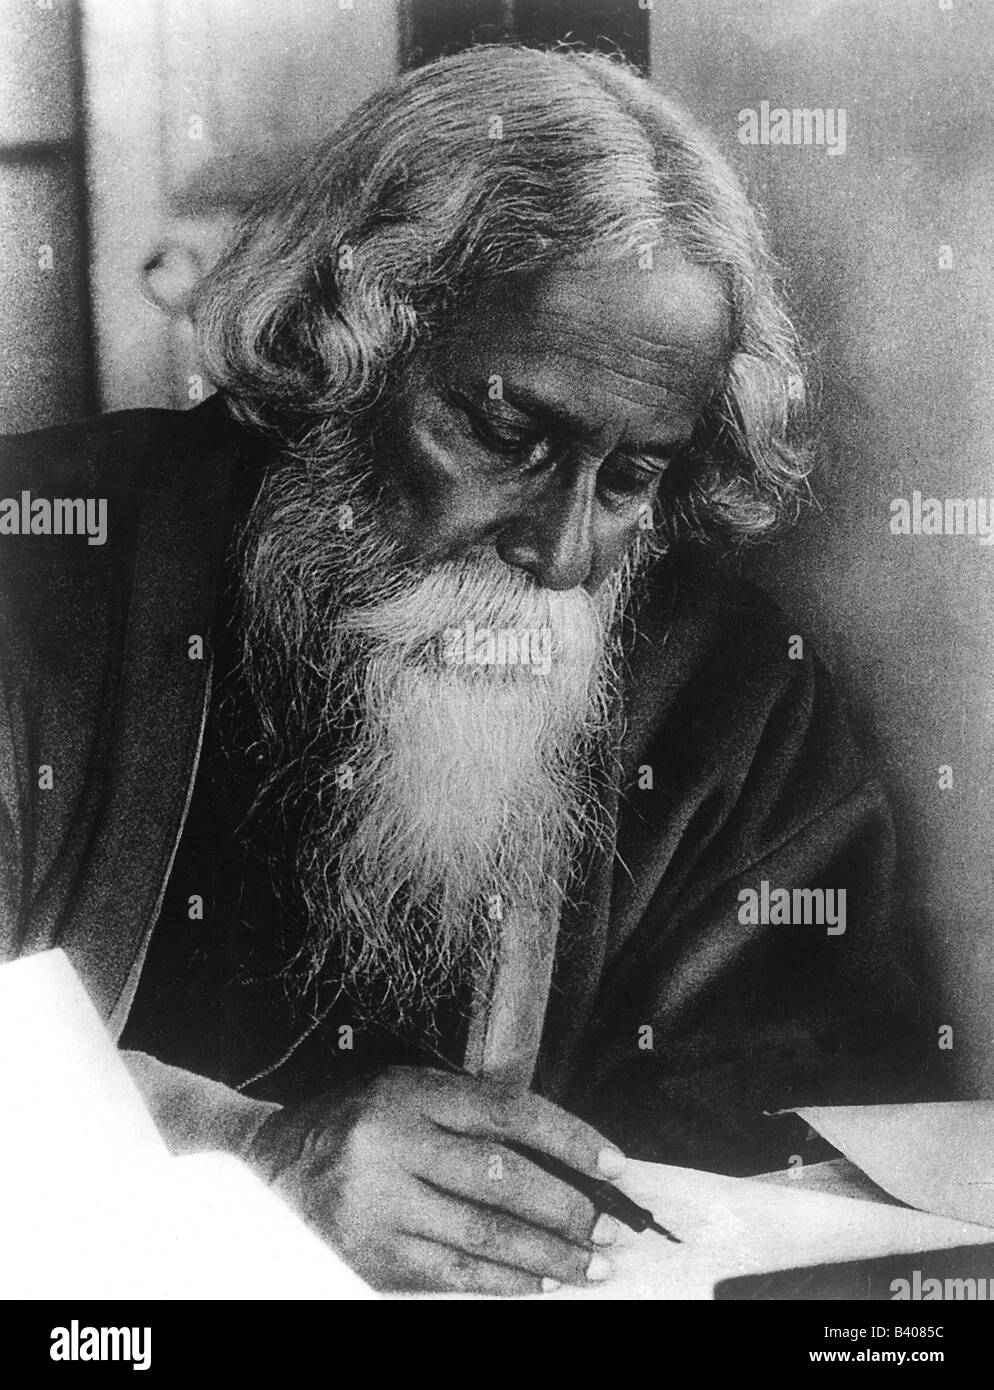 rabindranath tagore as a poet essay The works of rabindranath tagore consist of poems, novels, short stories, dramas, paintings, drawings, and music that bengali poet and brahmo philosopher rabindranath tagore created over his lifetime.